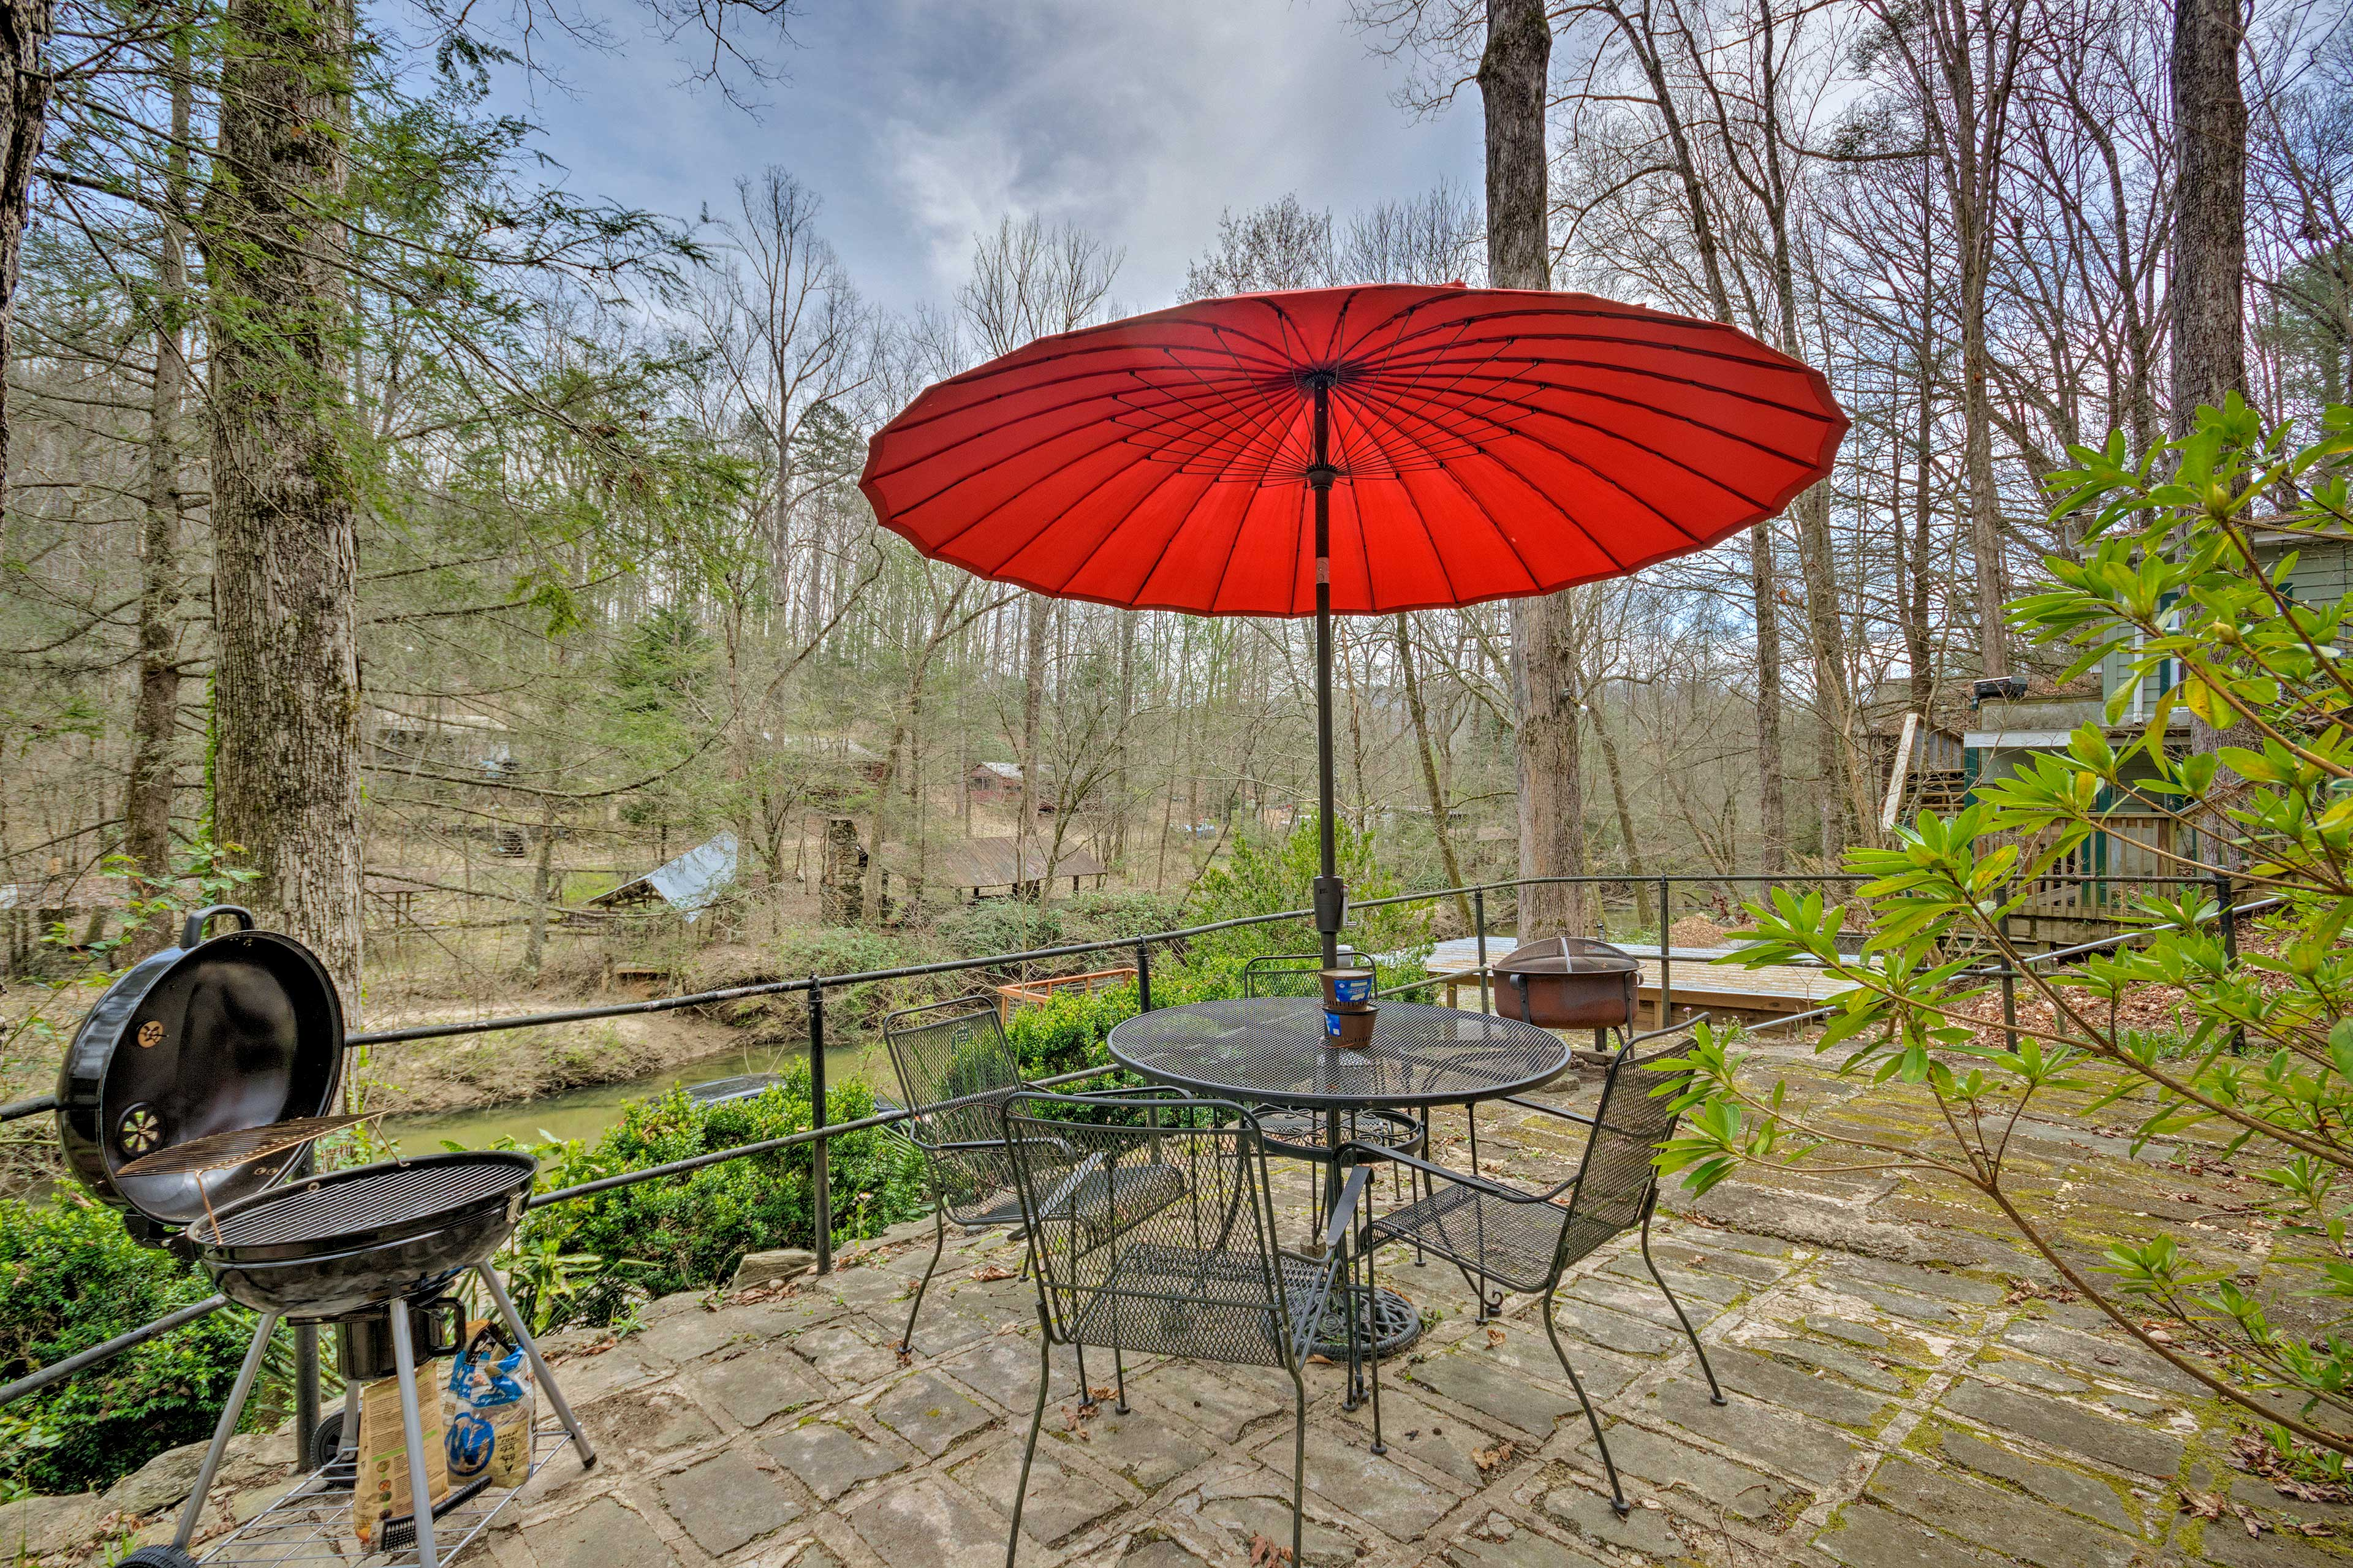 The patio also features a charcoal grill and a fire pit!